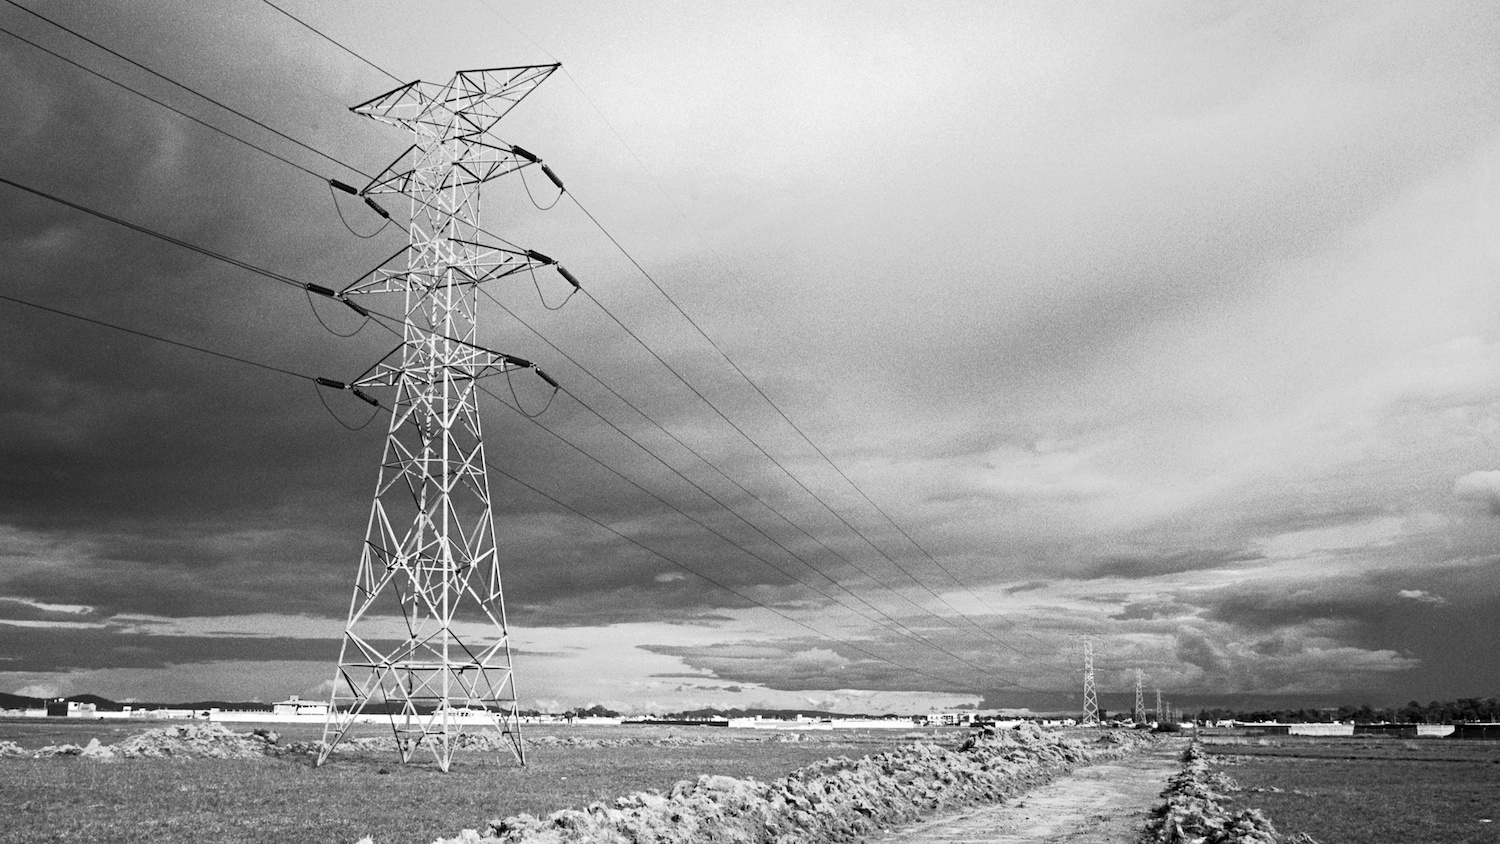 An electricity tower in the outskirts of Cholula, Puebla. Photographed with a Nikon FE sometime in 1993